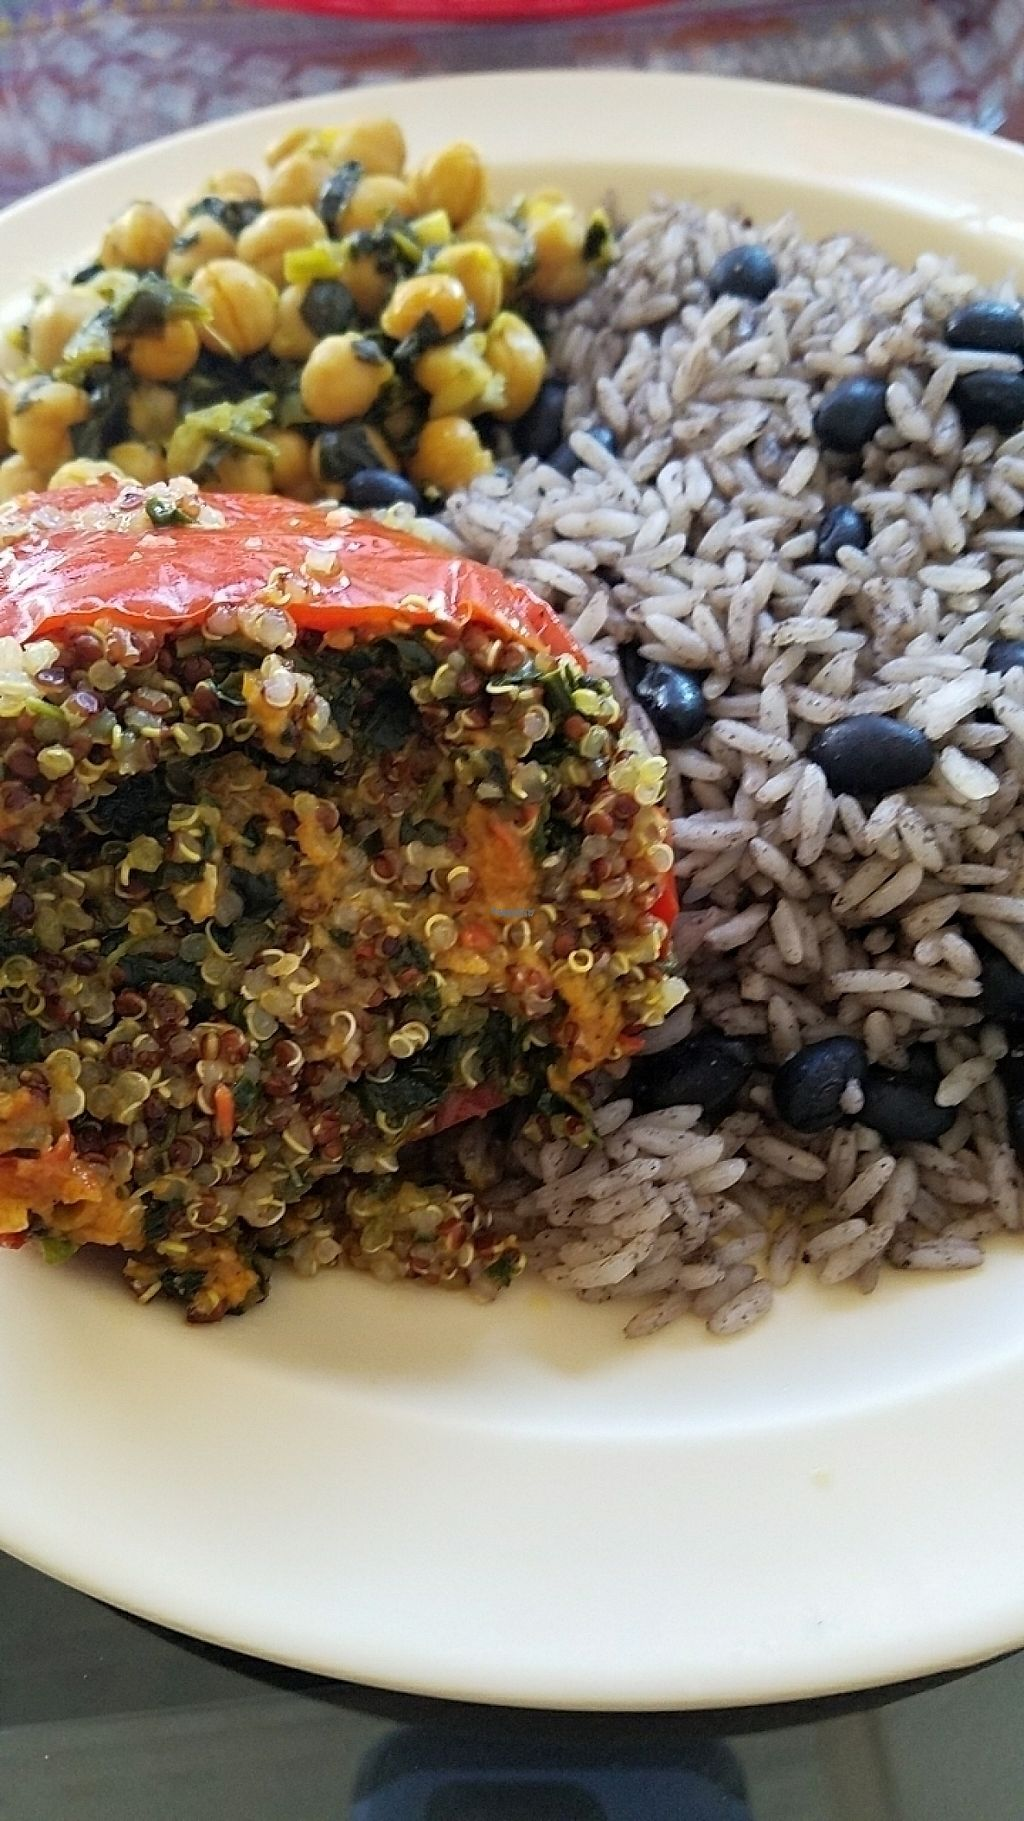 "Photo of La Empanada Llama  by <a href=""/members/profile/ehubert"">ehubert</a> <br/>Quinoa stuffed pepper, rice and black beans, and chickpeas and spinach <br/> March 23, 2017  - <a href='/contact/abuse/image/89098/239634'>Report</a>"